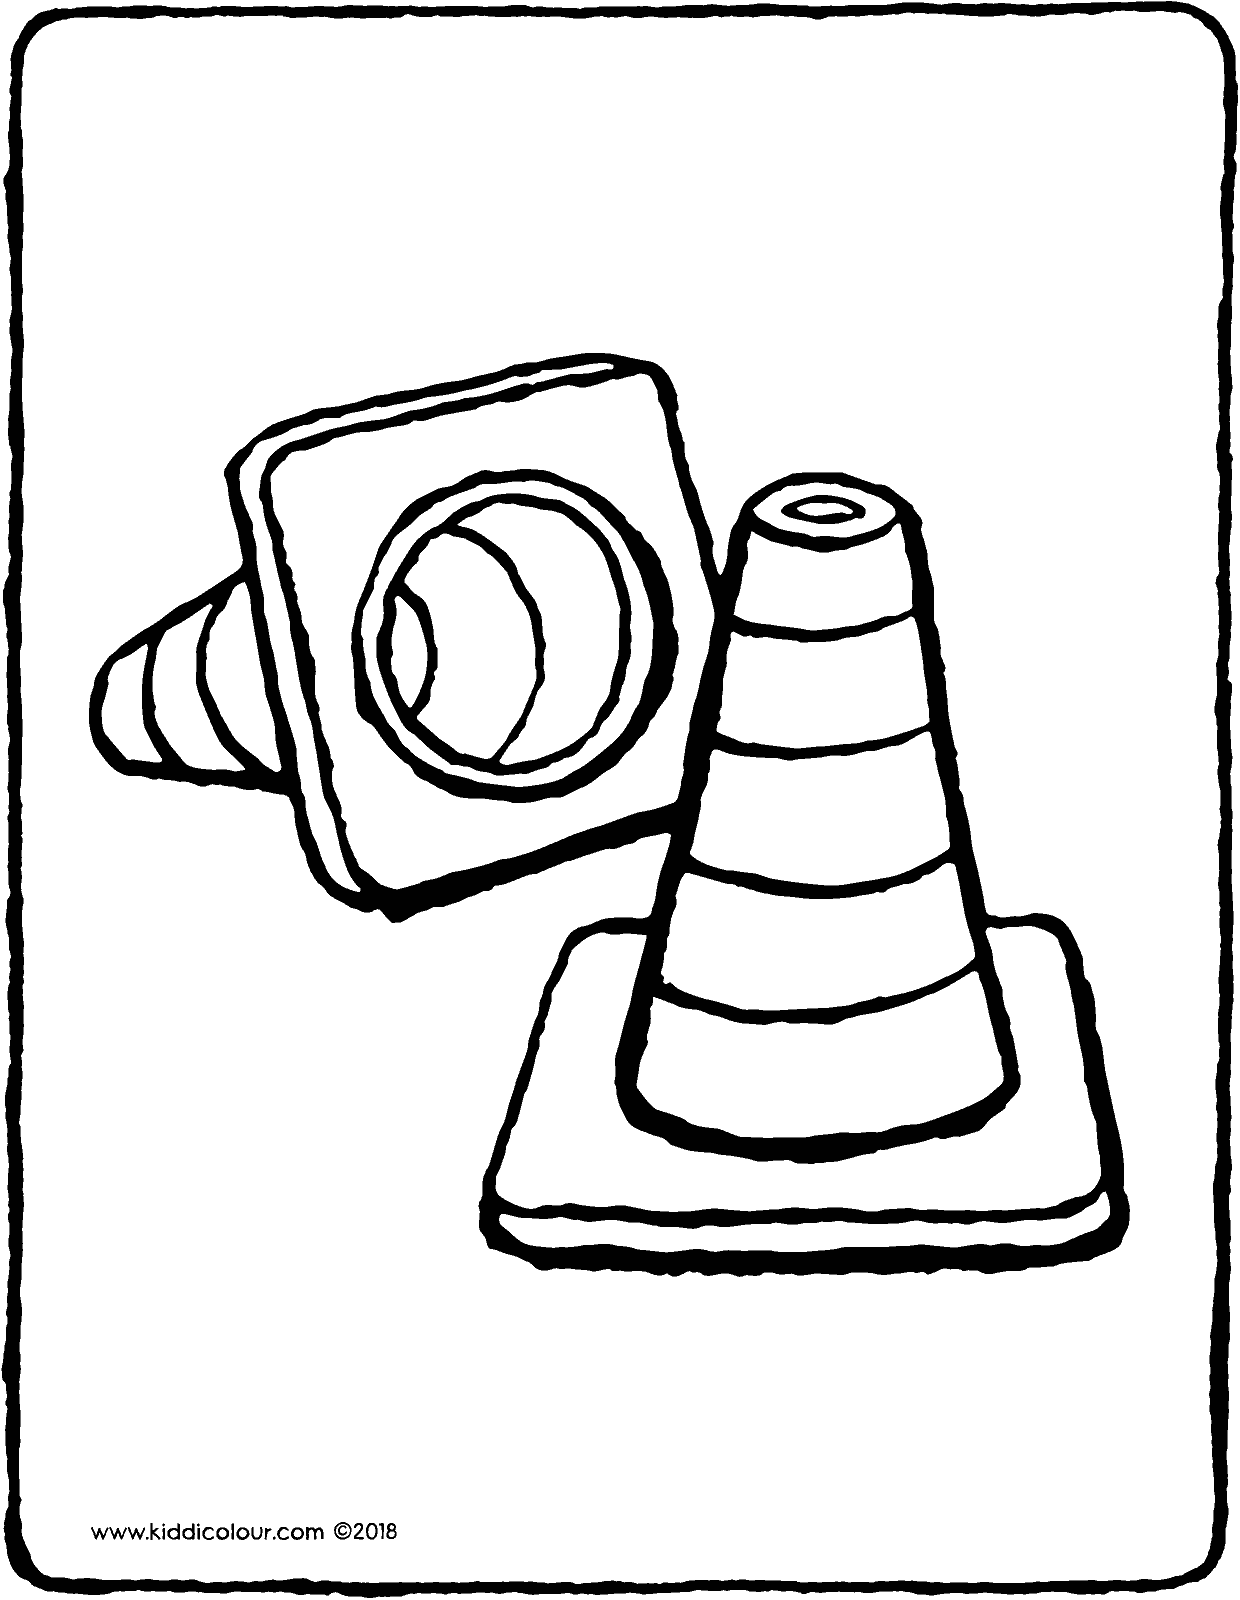 traffic cones colouring page drawing picture 01V